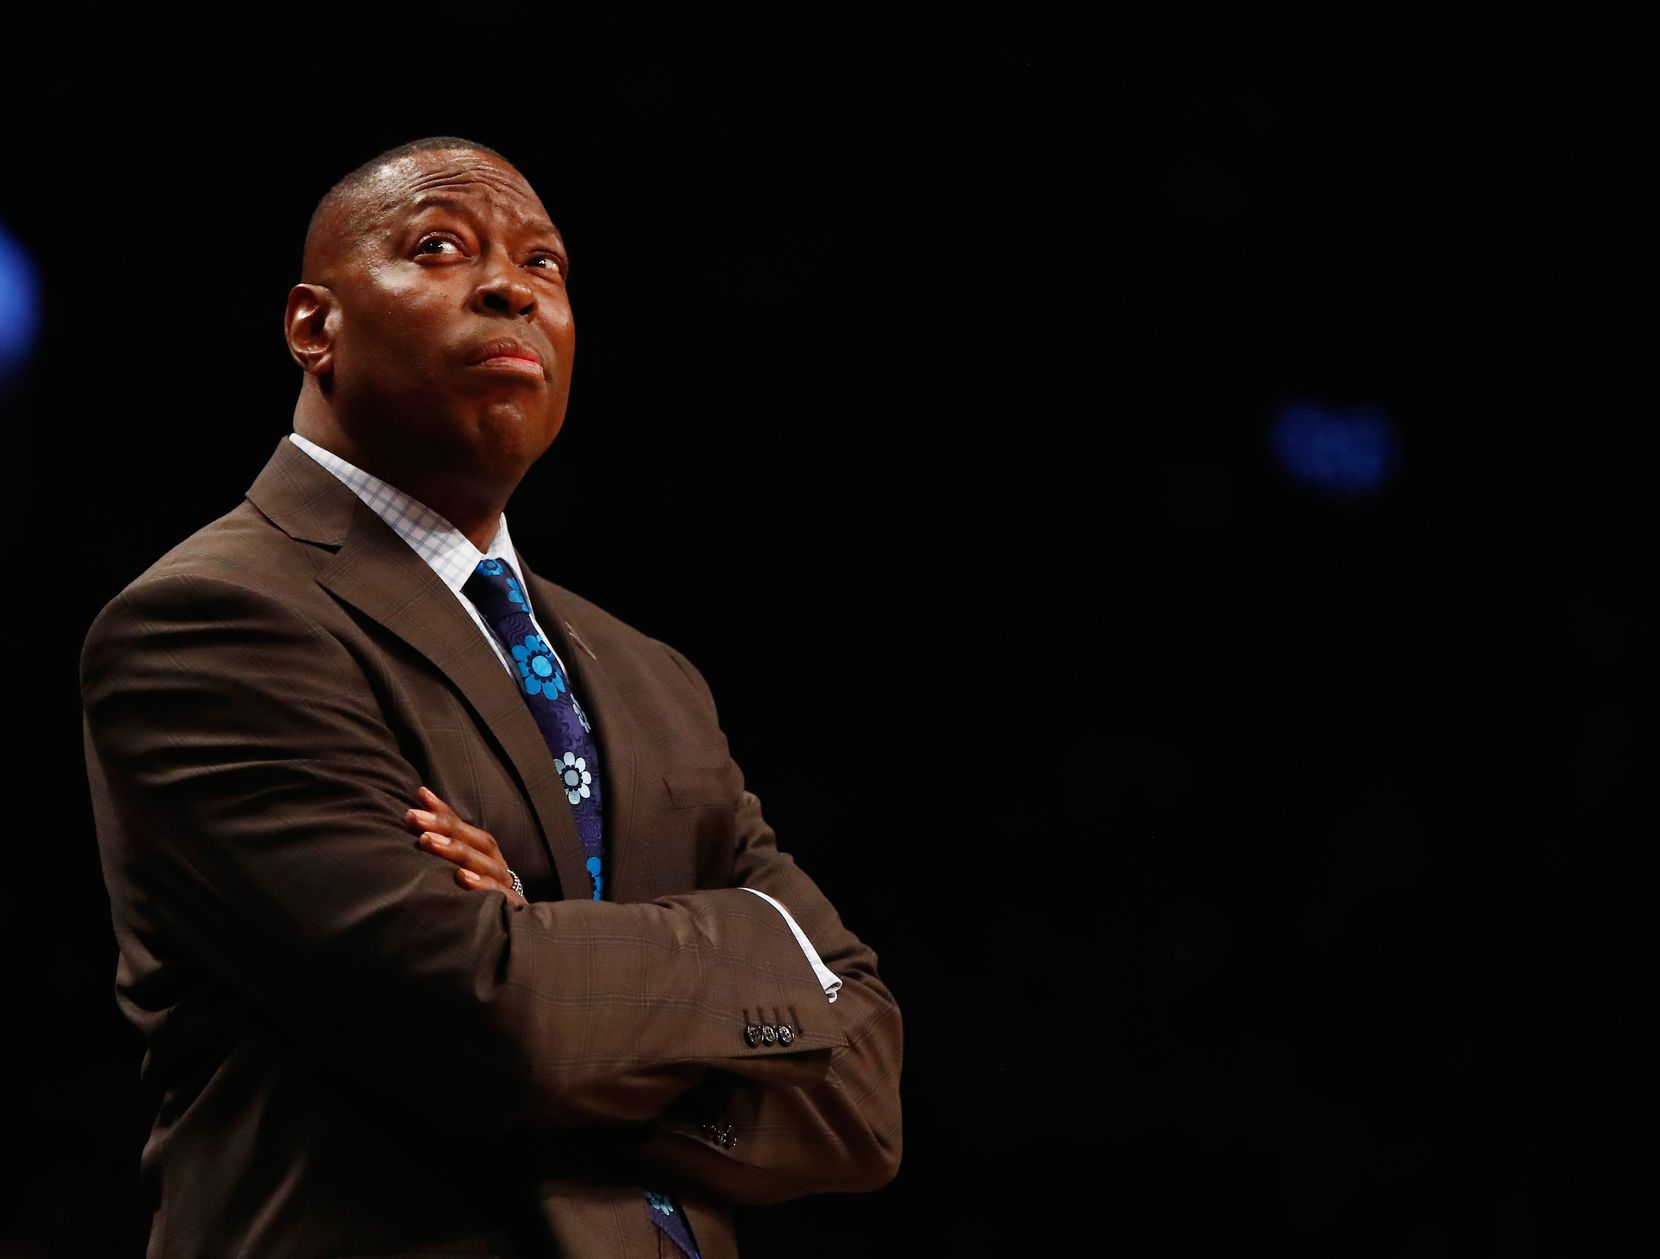 Head Coach Tony Brown of the Brooklyn Nets looks on against the Charlotte Hornets during their game at the Barclays Center on March 22, 2016 in New York City.